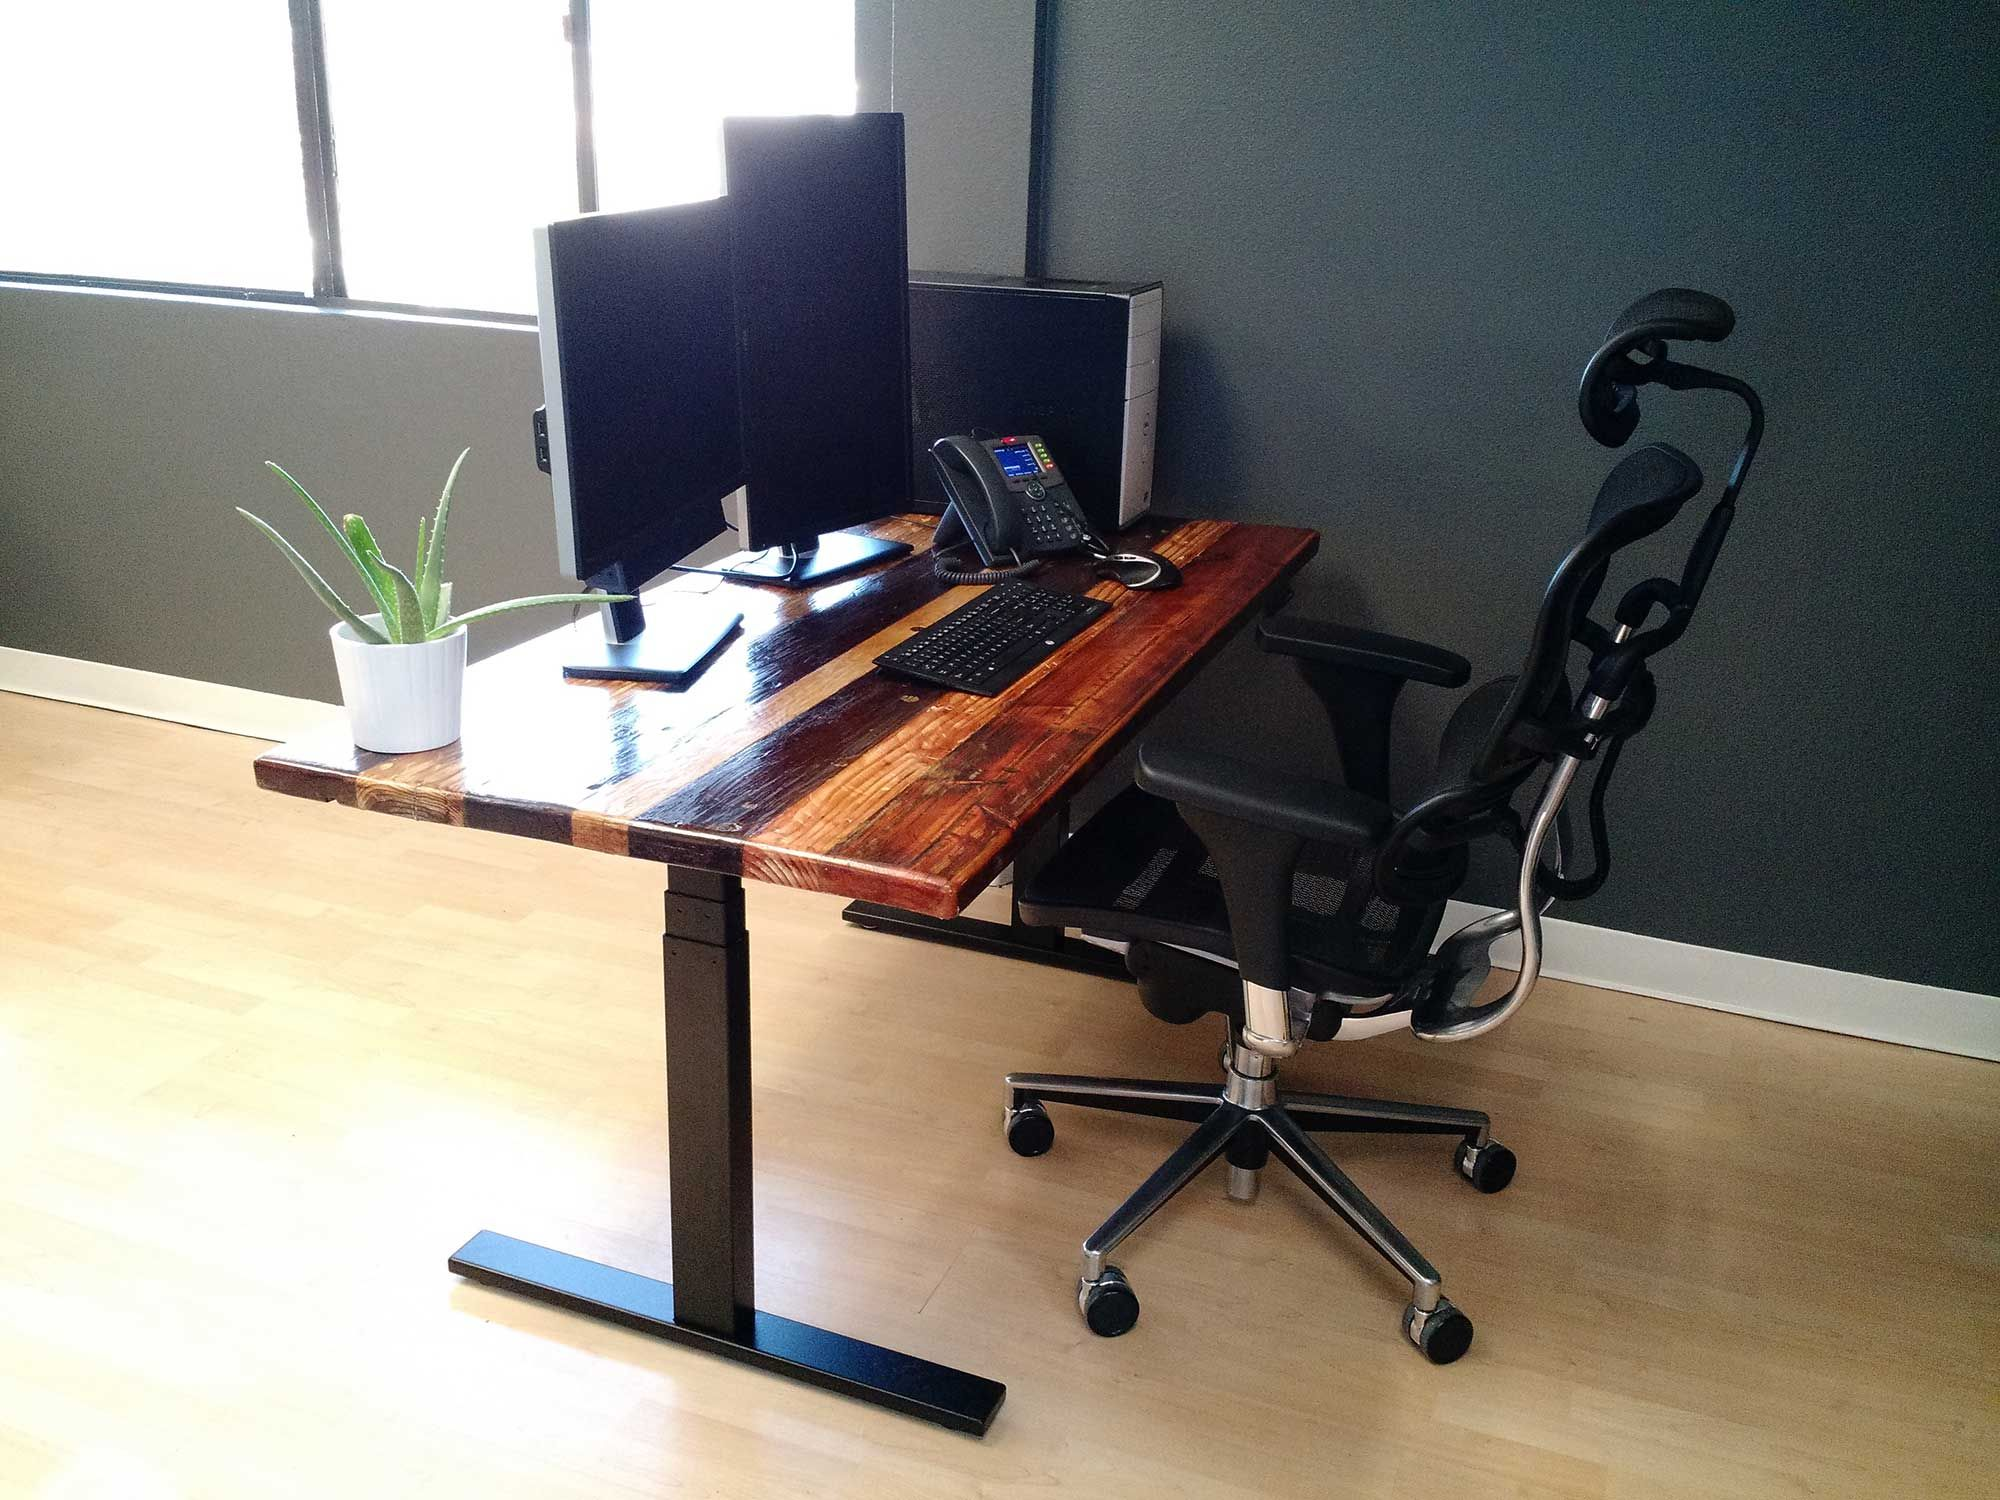 Smartdesk 2 Home Office Best Standing Desk Standing Desk Affordable Standing Desk